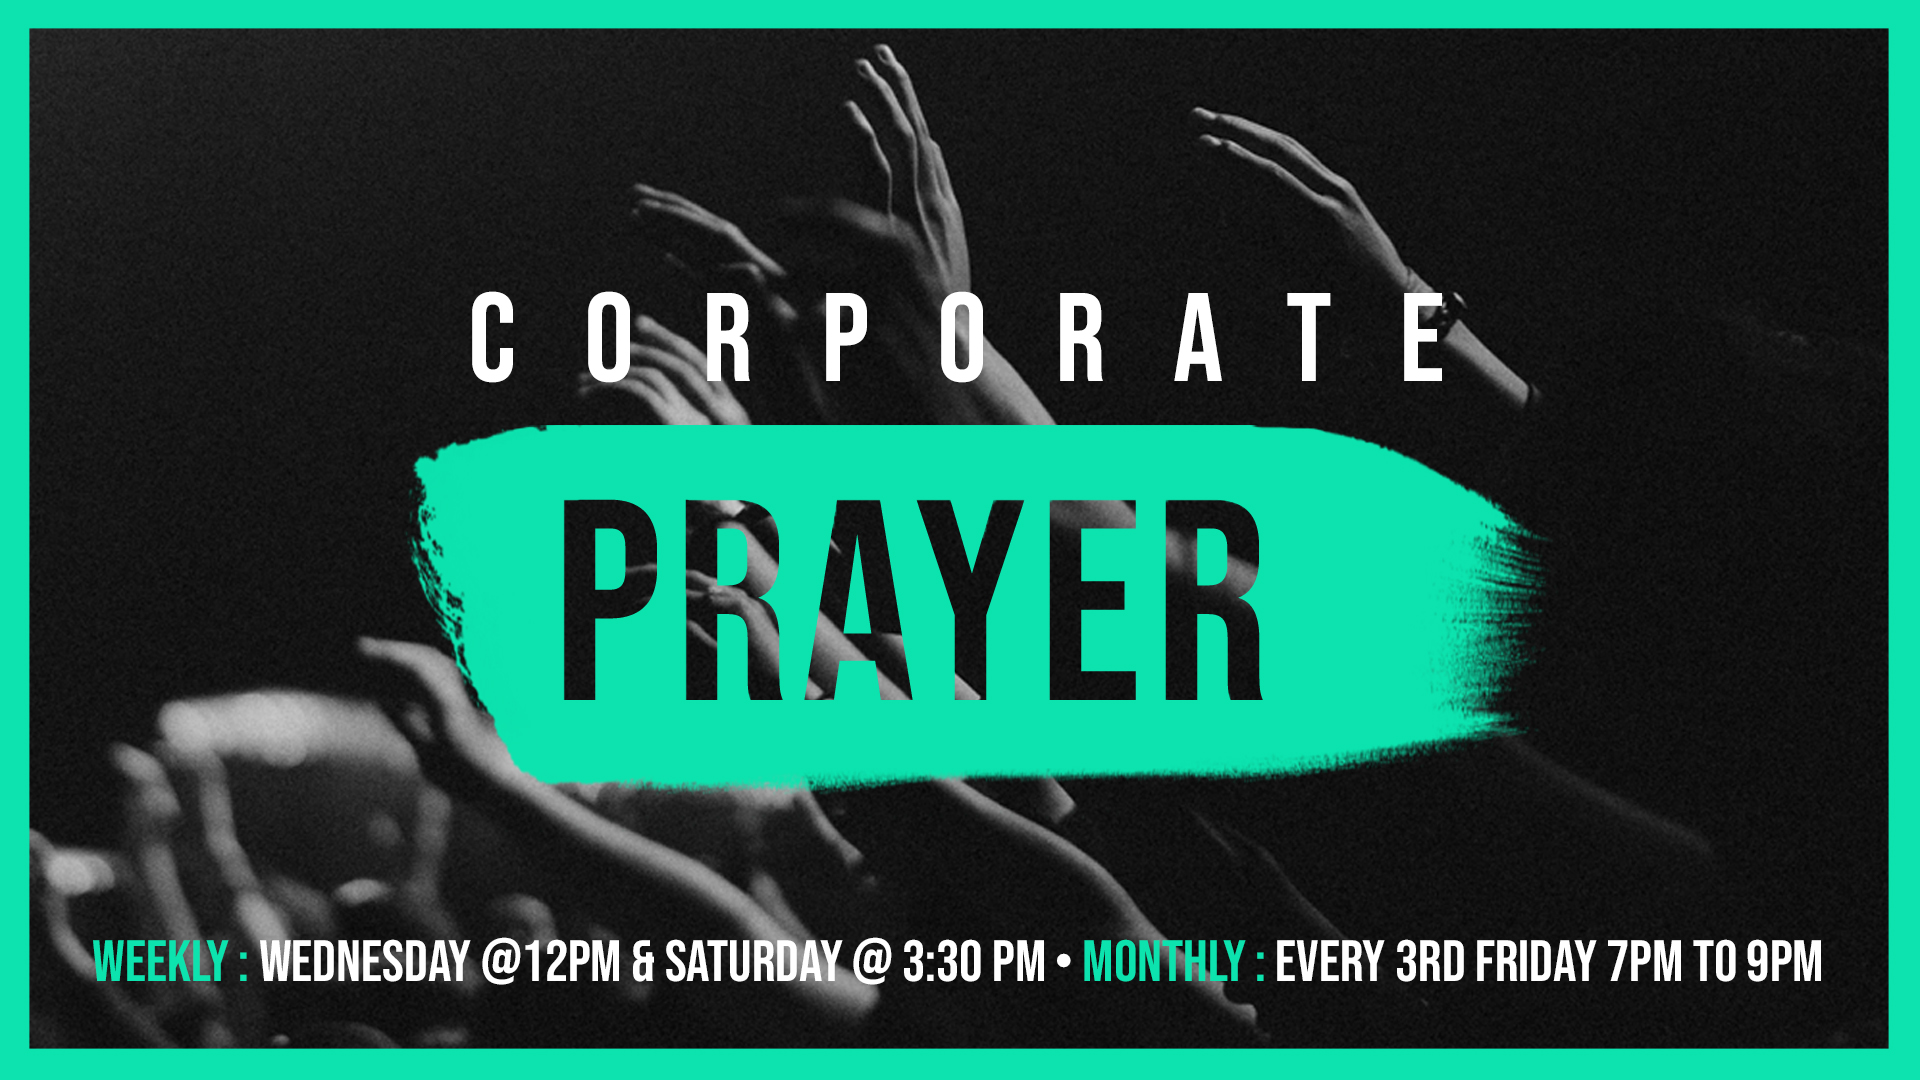 corporate prayer - Join us weekly on Wednesday at 12:00PM and Saturday at 3:30PM. We also have corporate prayer every month on the 3rd Friday from 7:00PM to 9:00PM.